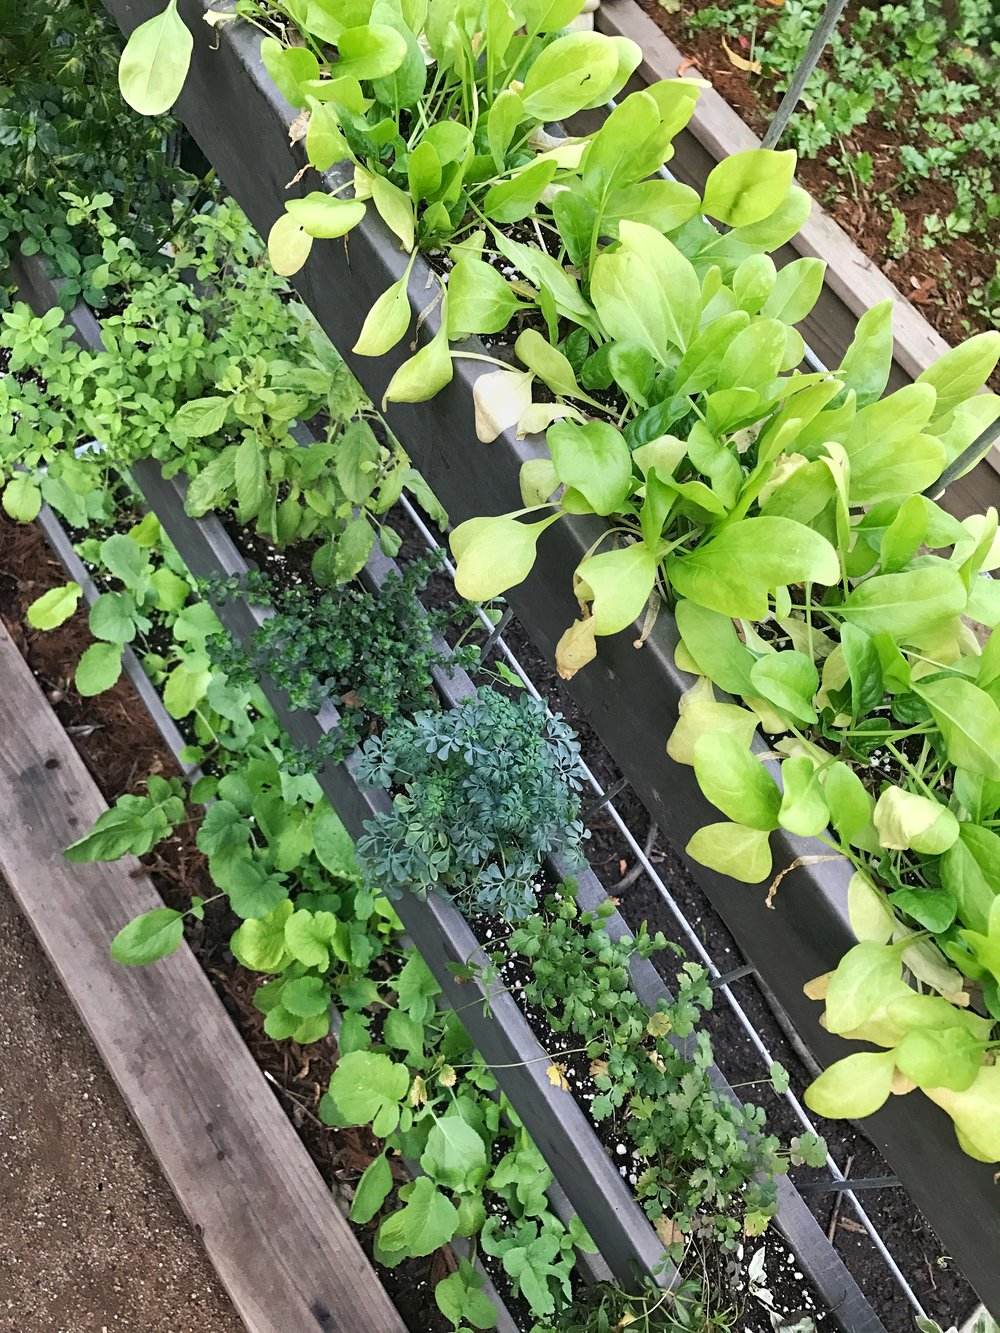 - Rain Gutter Planters work very well for growing shallow-rooted fruits and vegetables in while utilizing vertical space on a fence, balcony, wall, or trellis. Please see our YouTube video for an instructional guide and comment on the video with any questions.